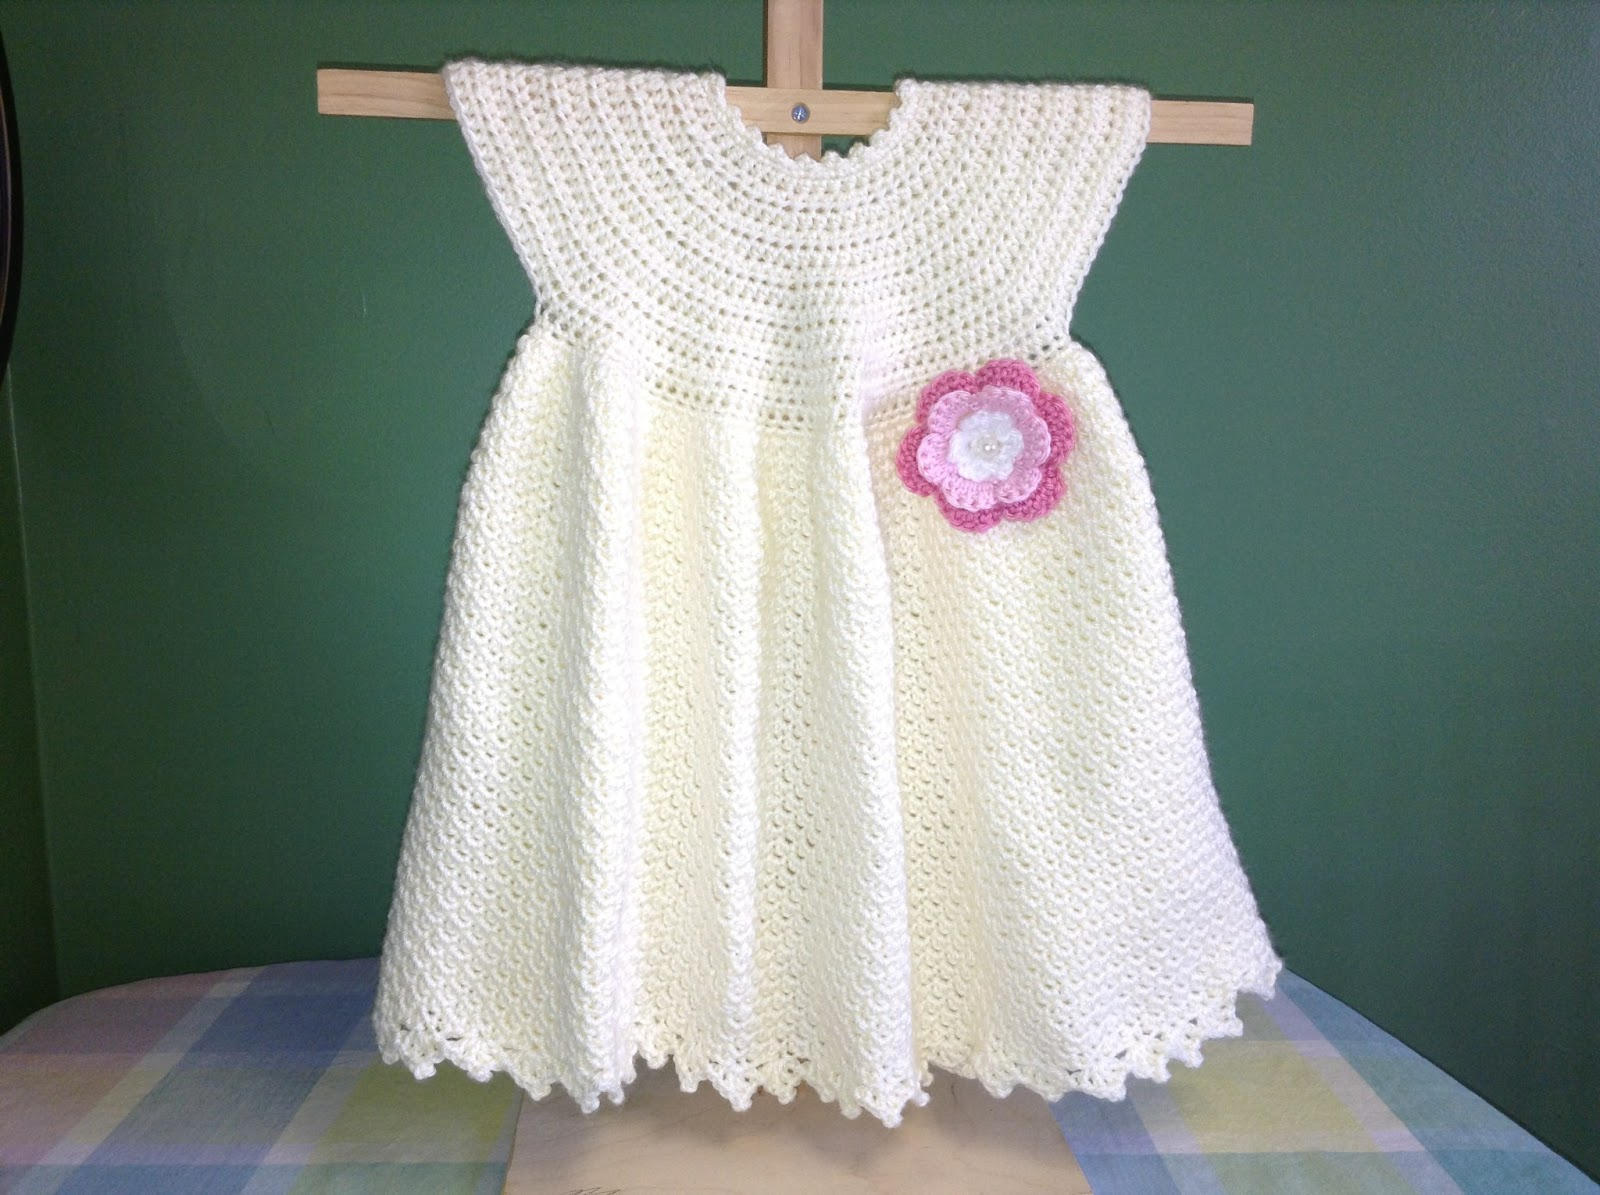 How To Crochet Dress Free Patterns : Annas Free Baby Crochet Dress Patterns - Inspiration and ...